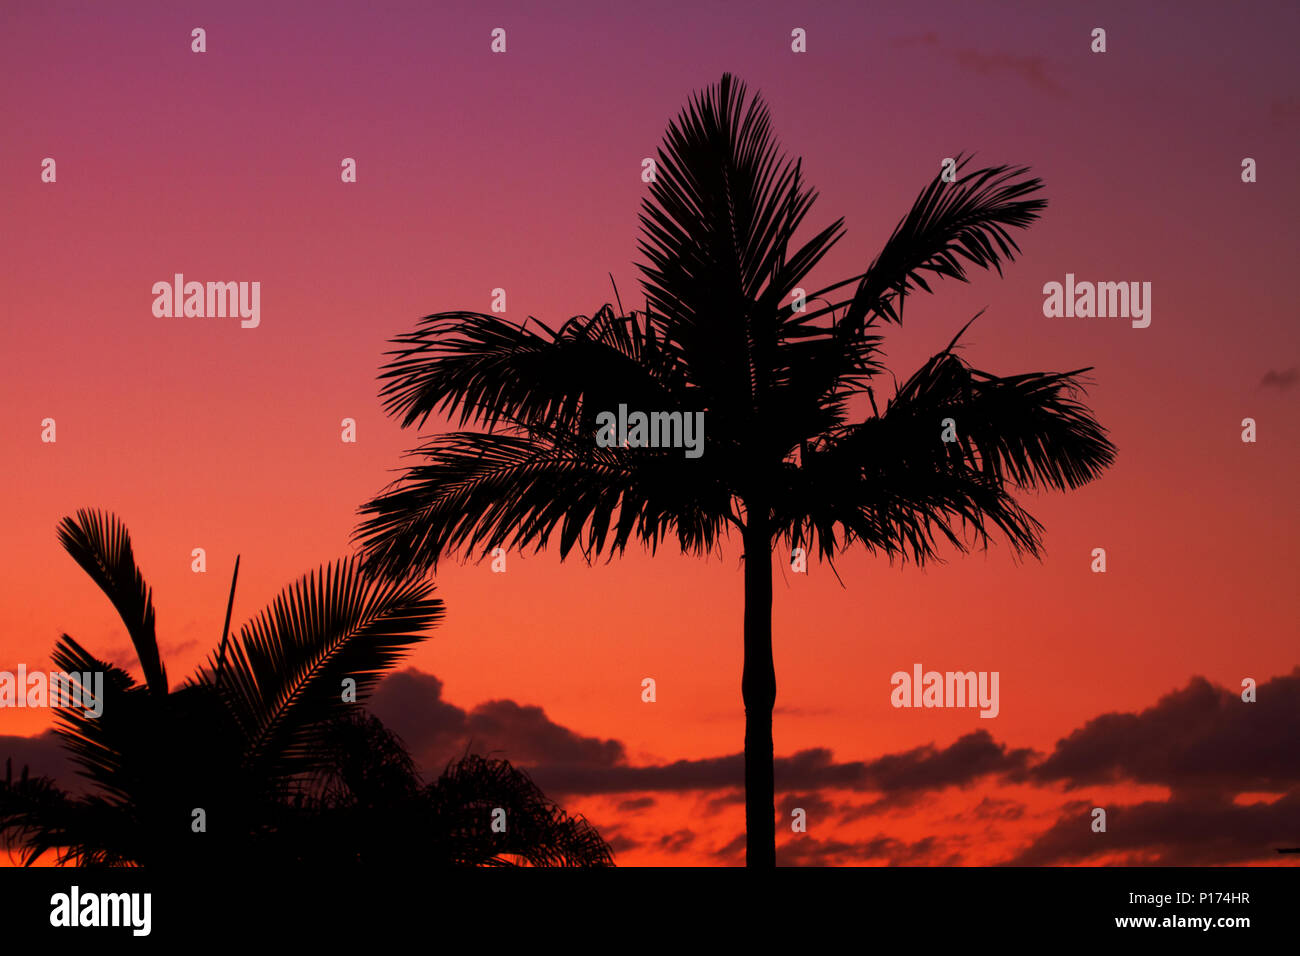 Sunset and palm trees, Gold Coast, Queensland, Australia - Stock Image